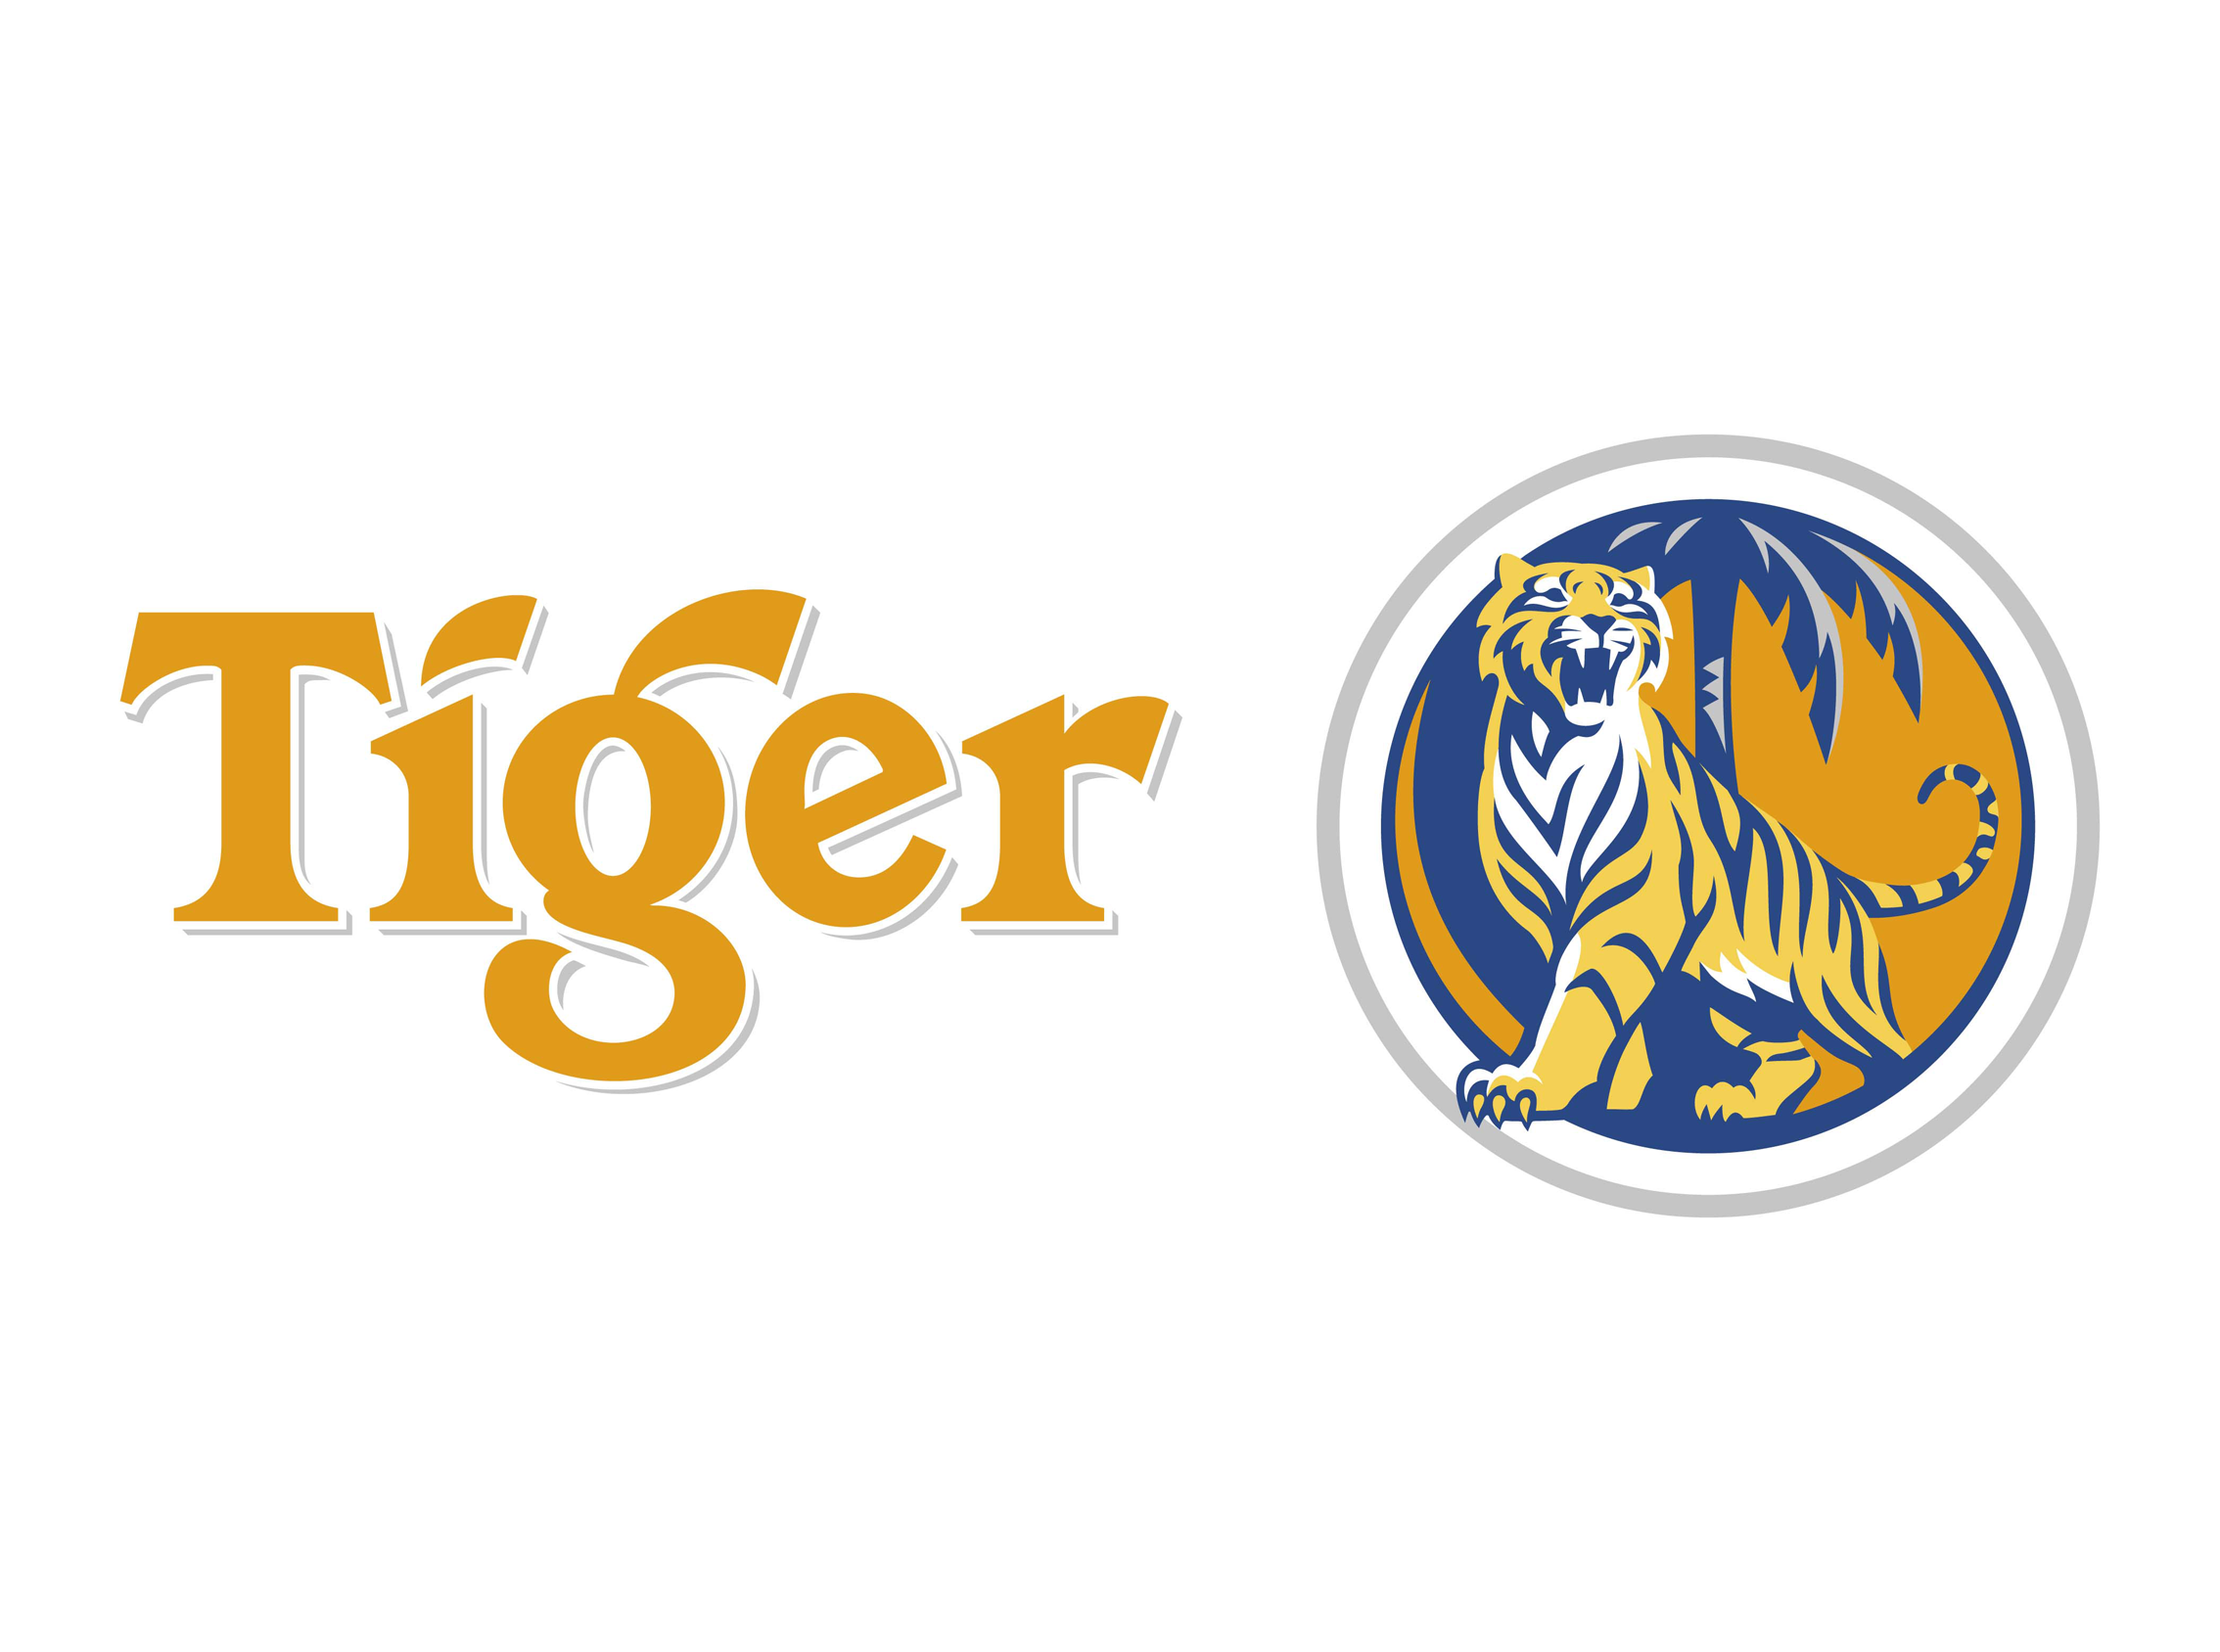 Tiger beer logo clipart graphic free library Tiger beer logo | Logok graphic free library